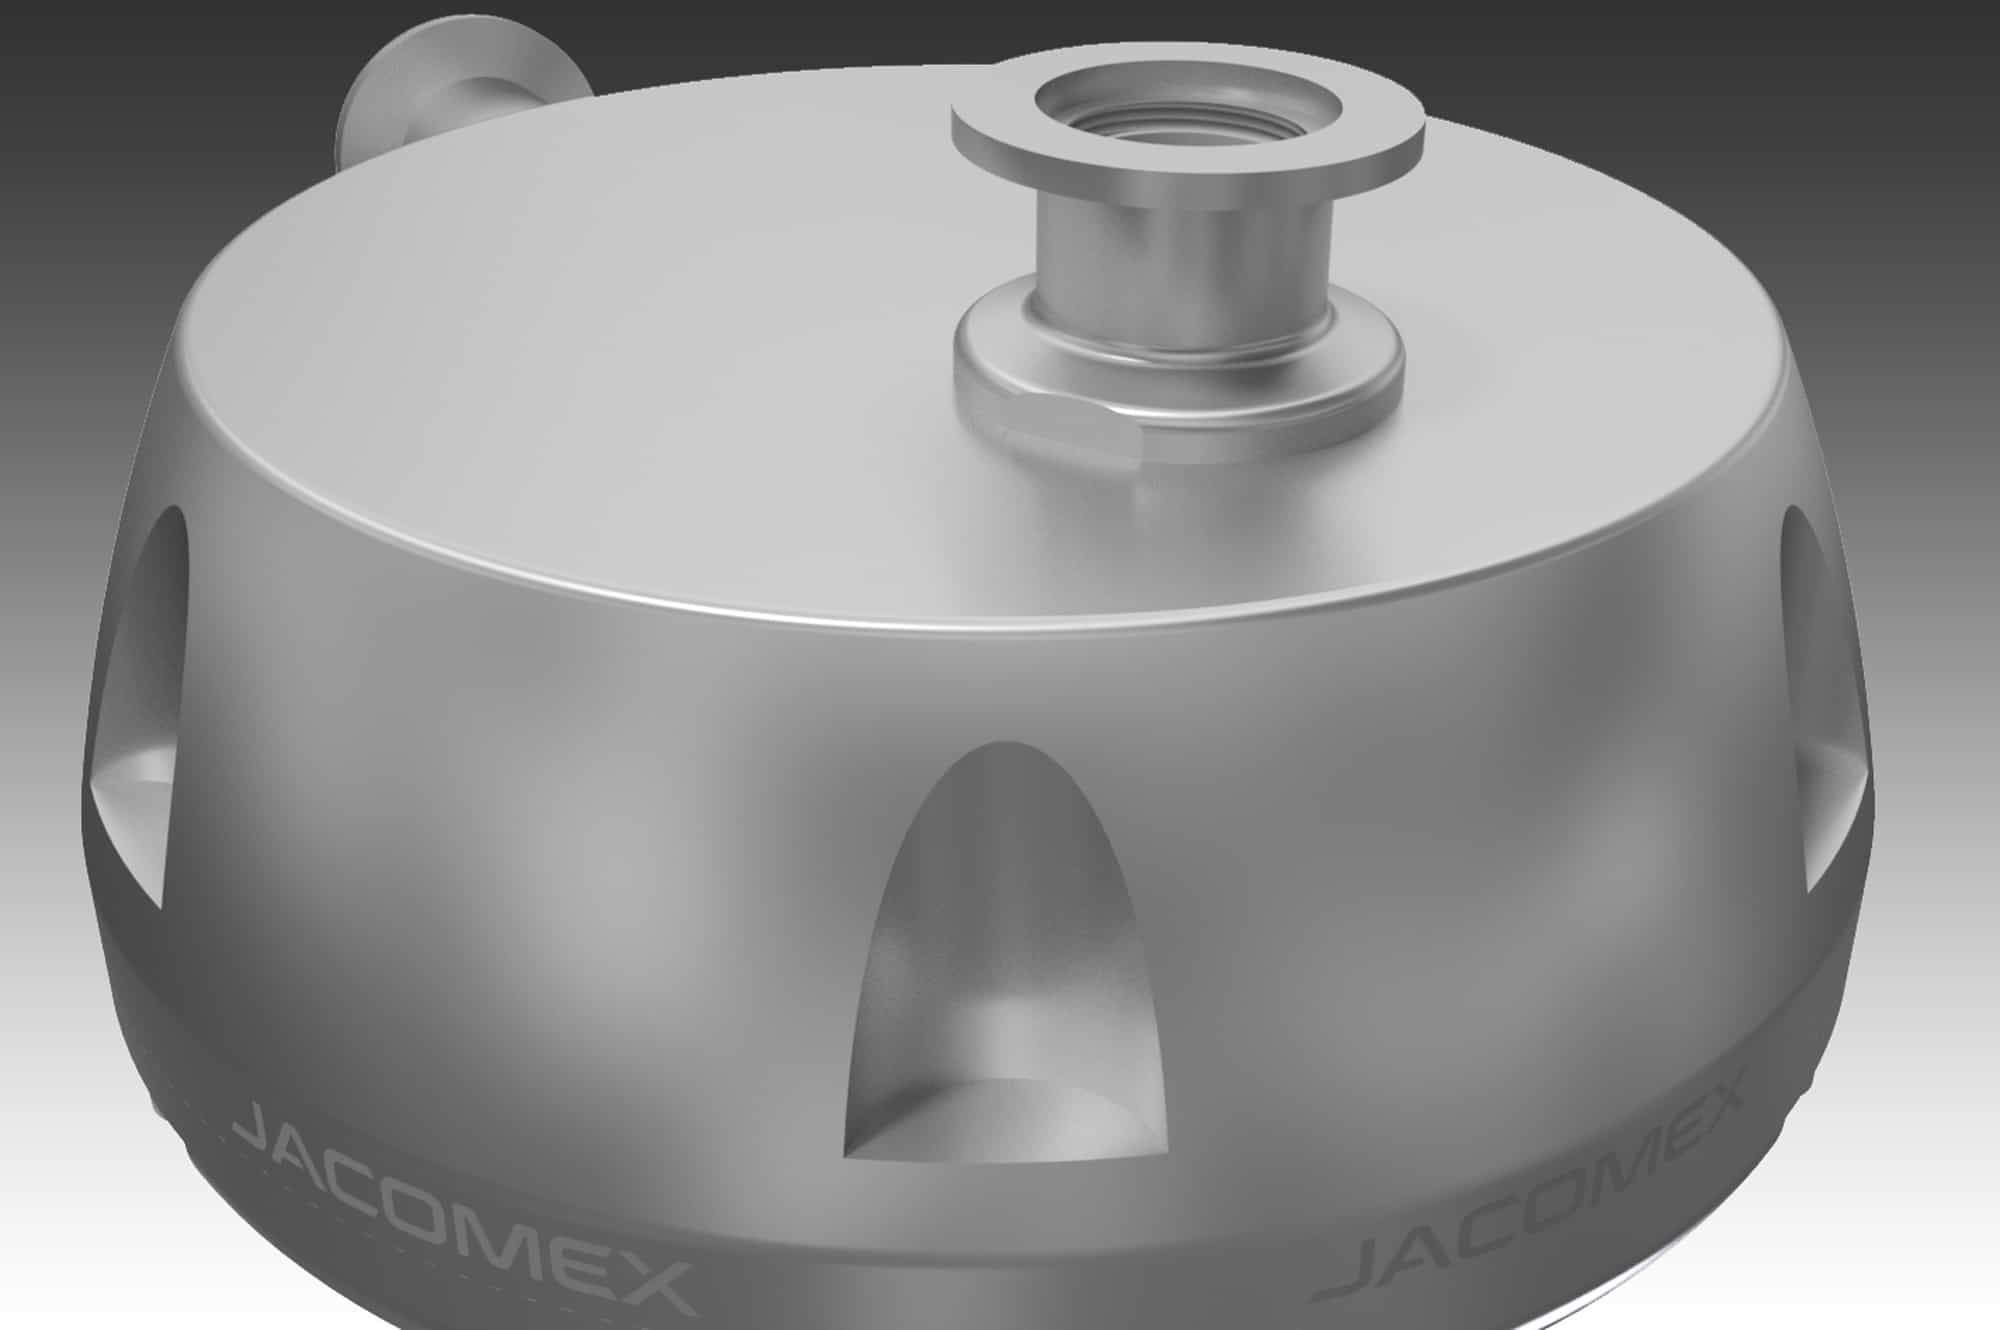 Jacomex R&D and Innovation in Glove Boxes and Isolators